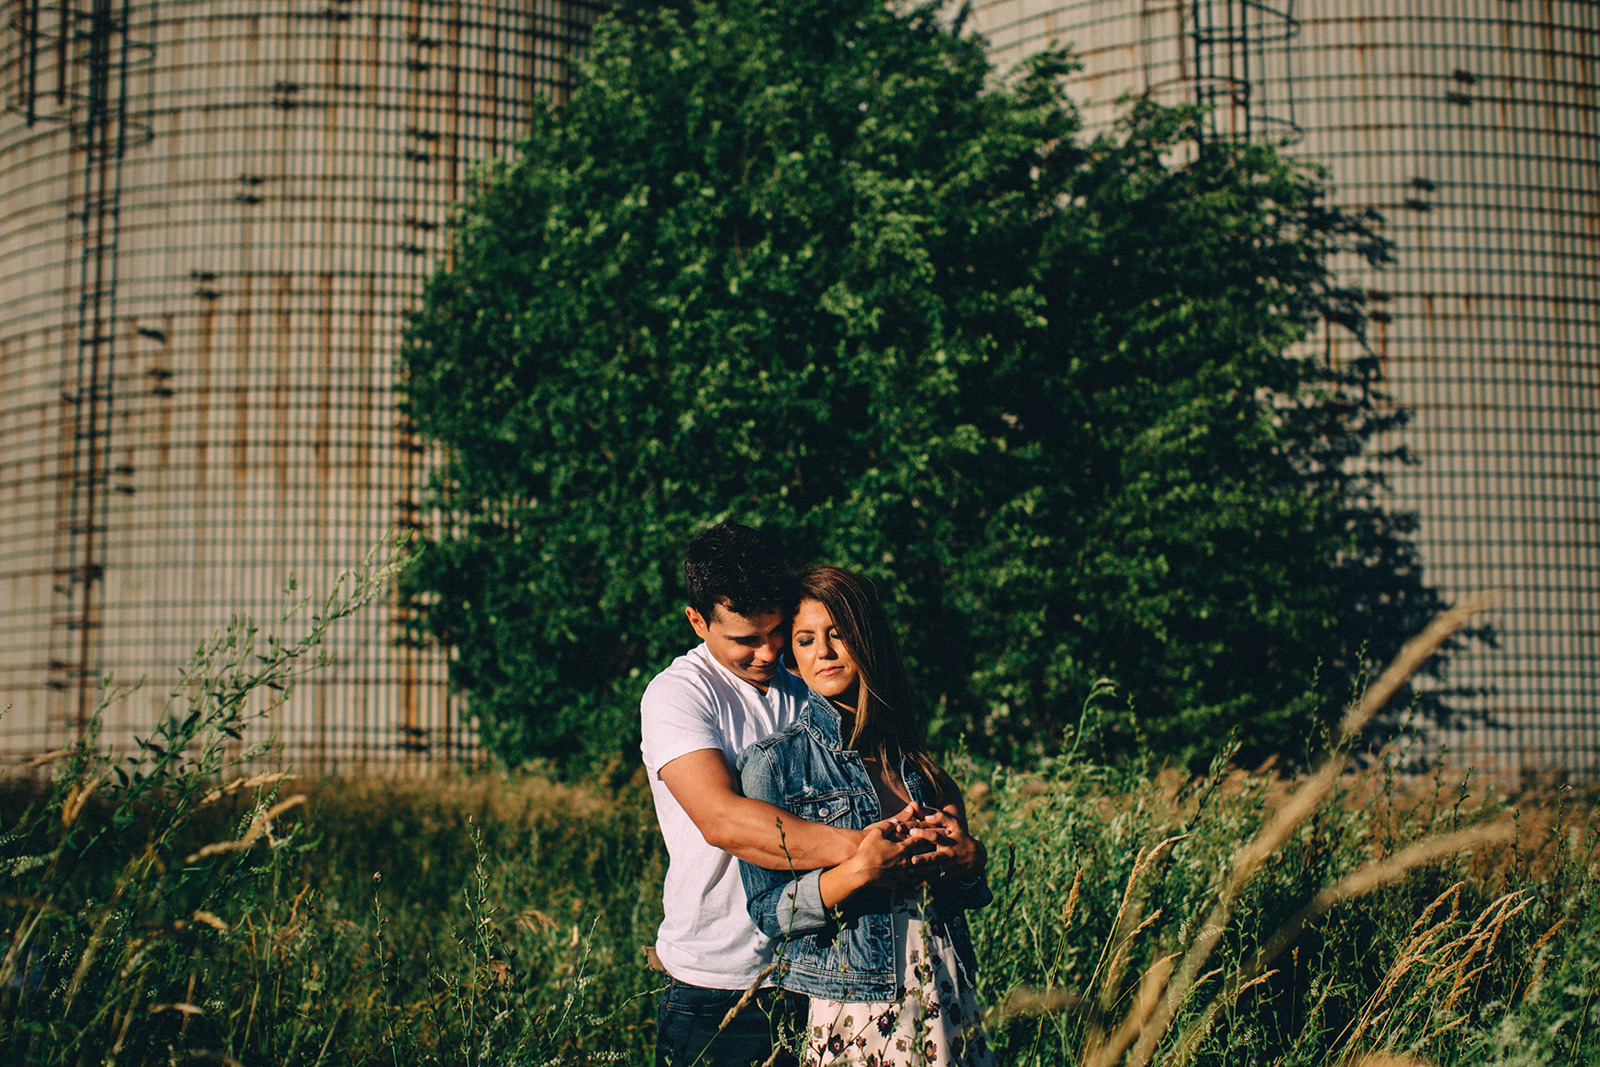 Rural-Ontario-modern-lifestyle-engagement-session-Sam-Wong-Visual-Cravings-AnJ_08